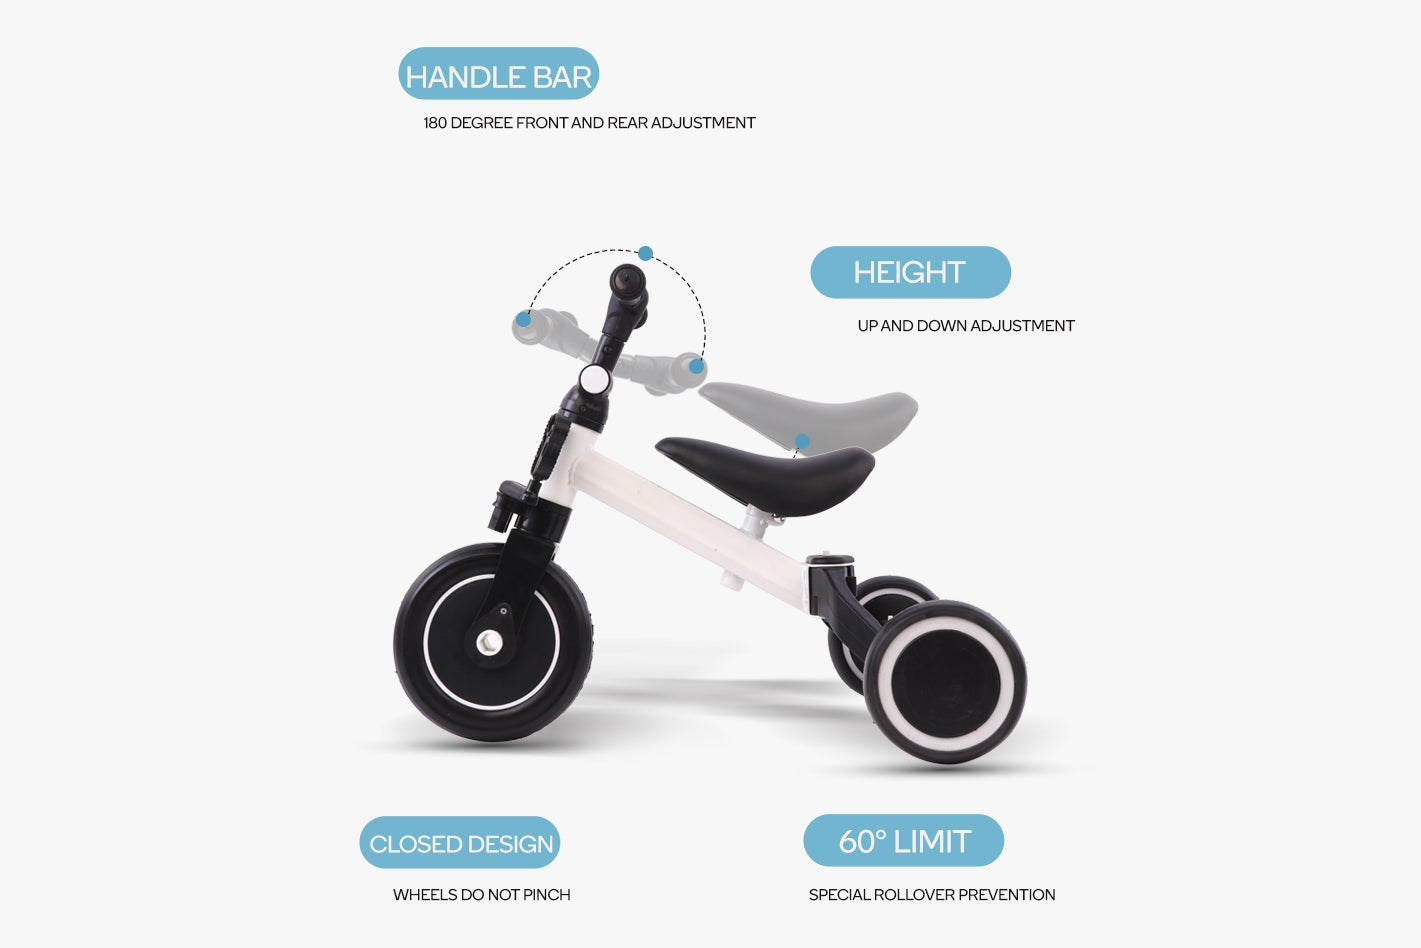 Benefits of the balance bike